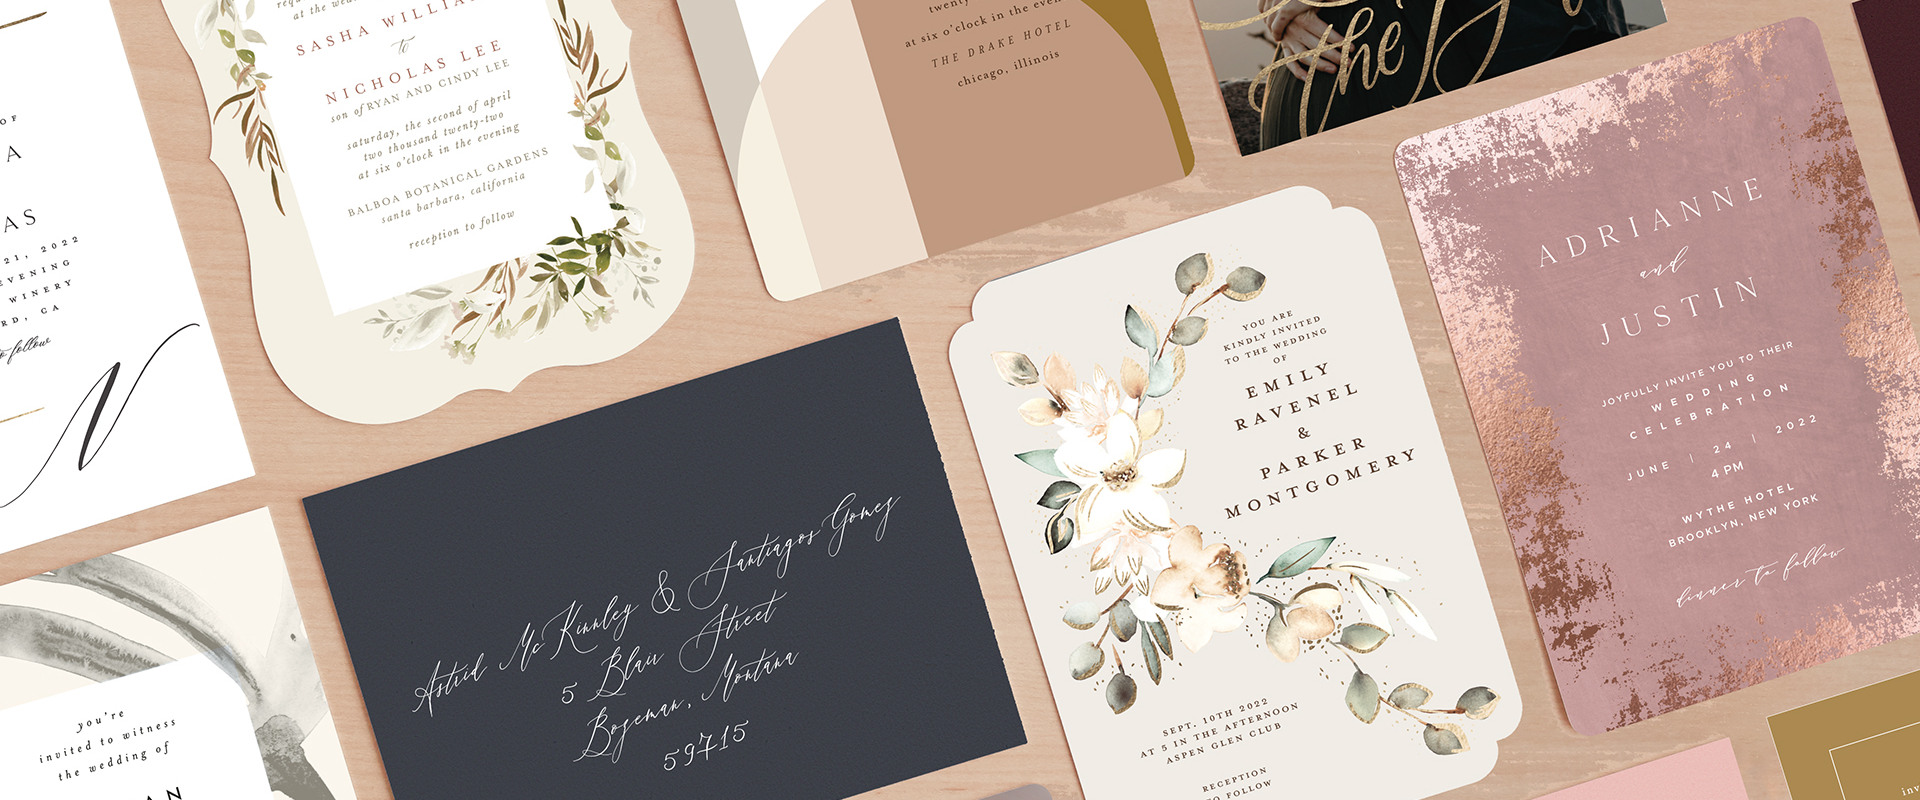 Wedding Invitations from Minted